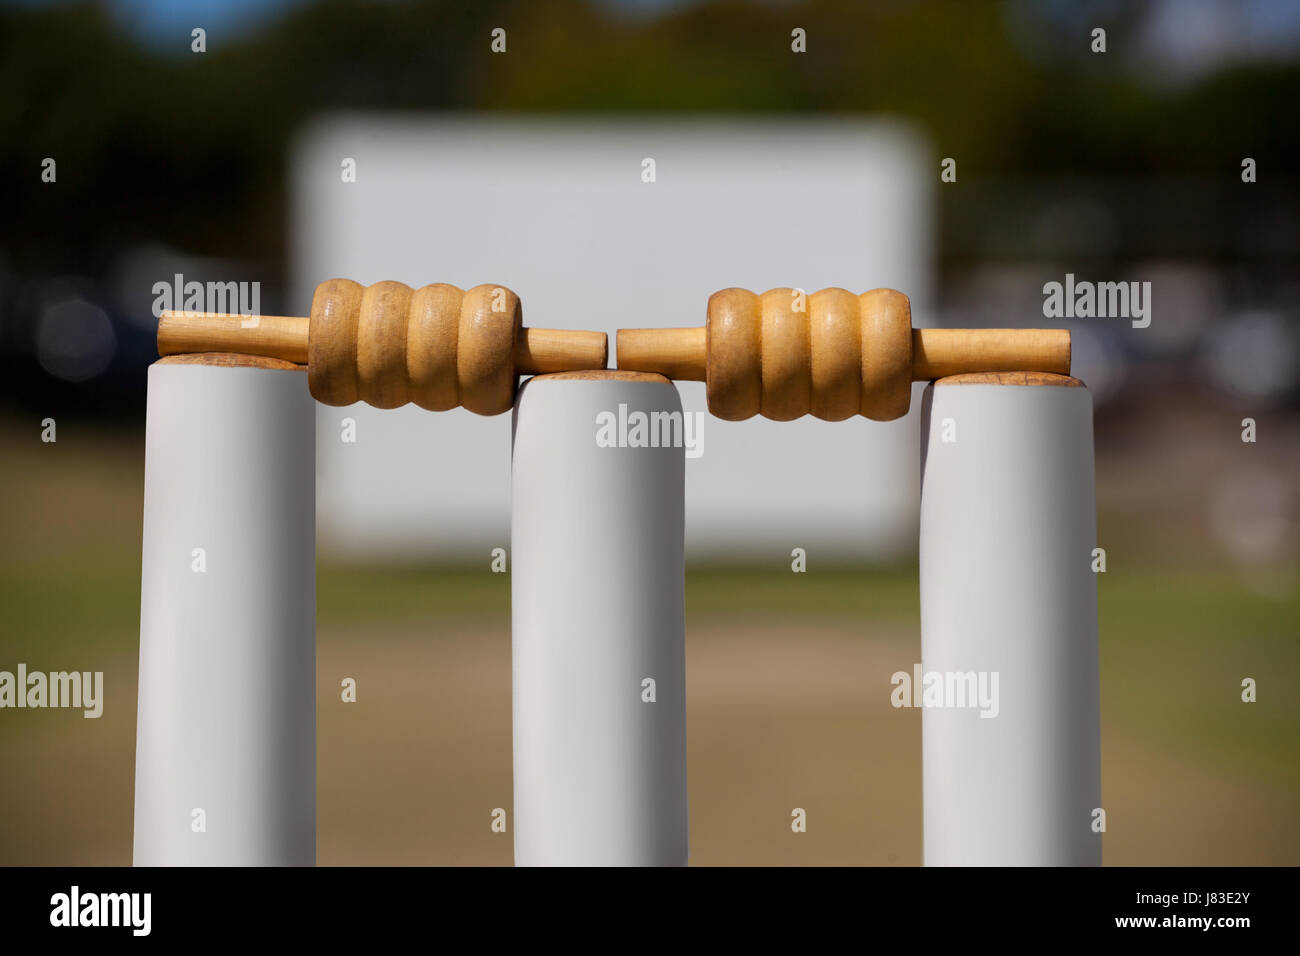 Close-up of bails on stumps at cricket field - Stock Image